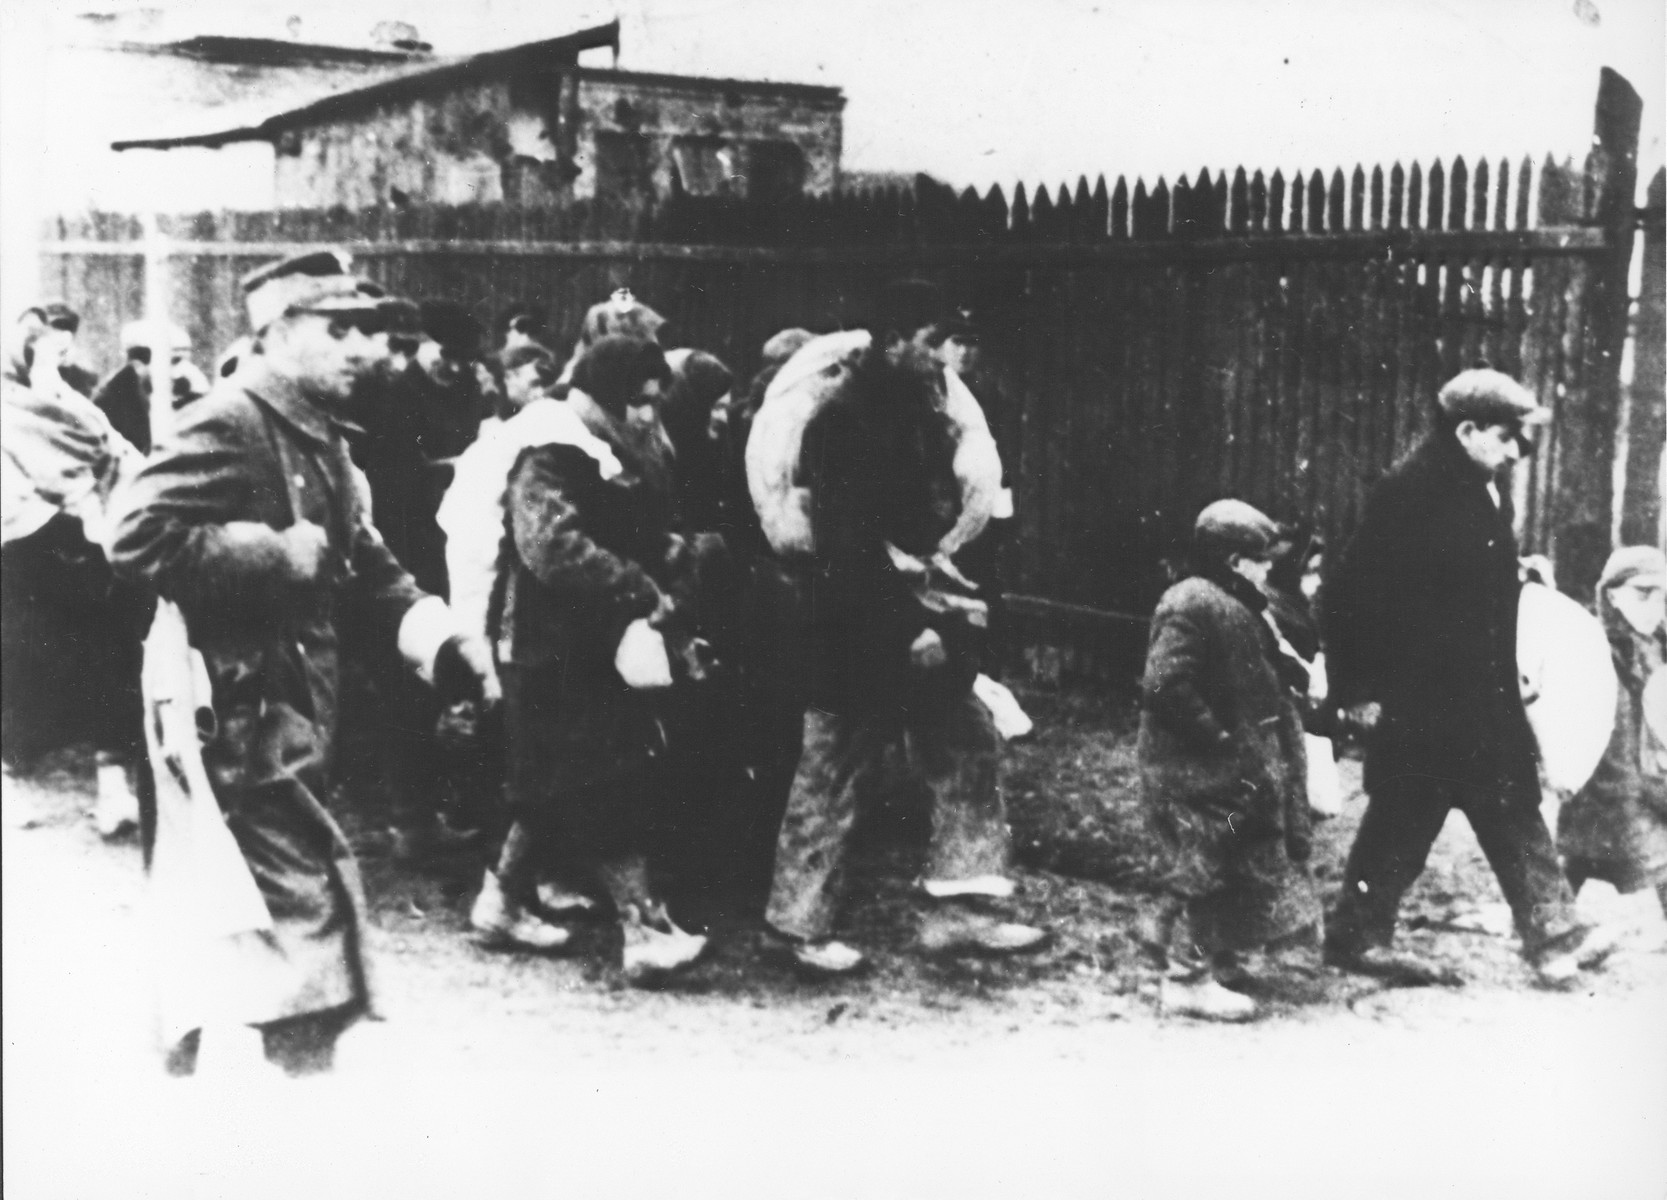 Jews are marched through town carrying bundles during a deportation action from Plonsk.